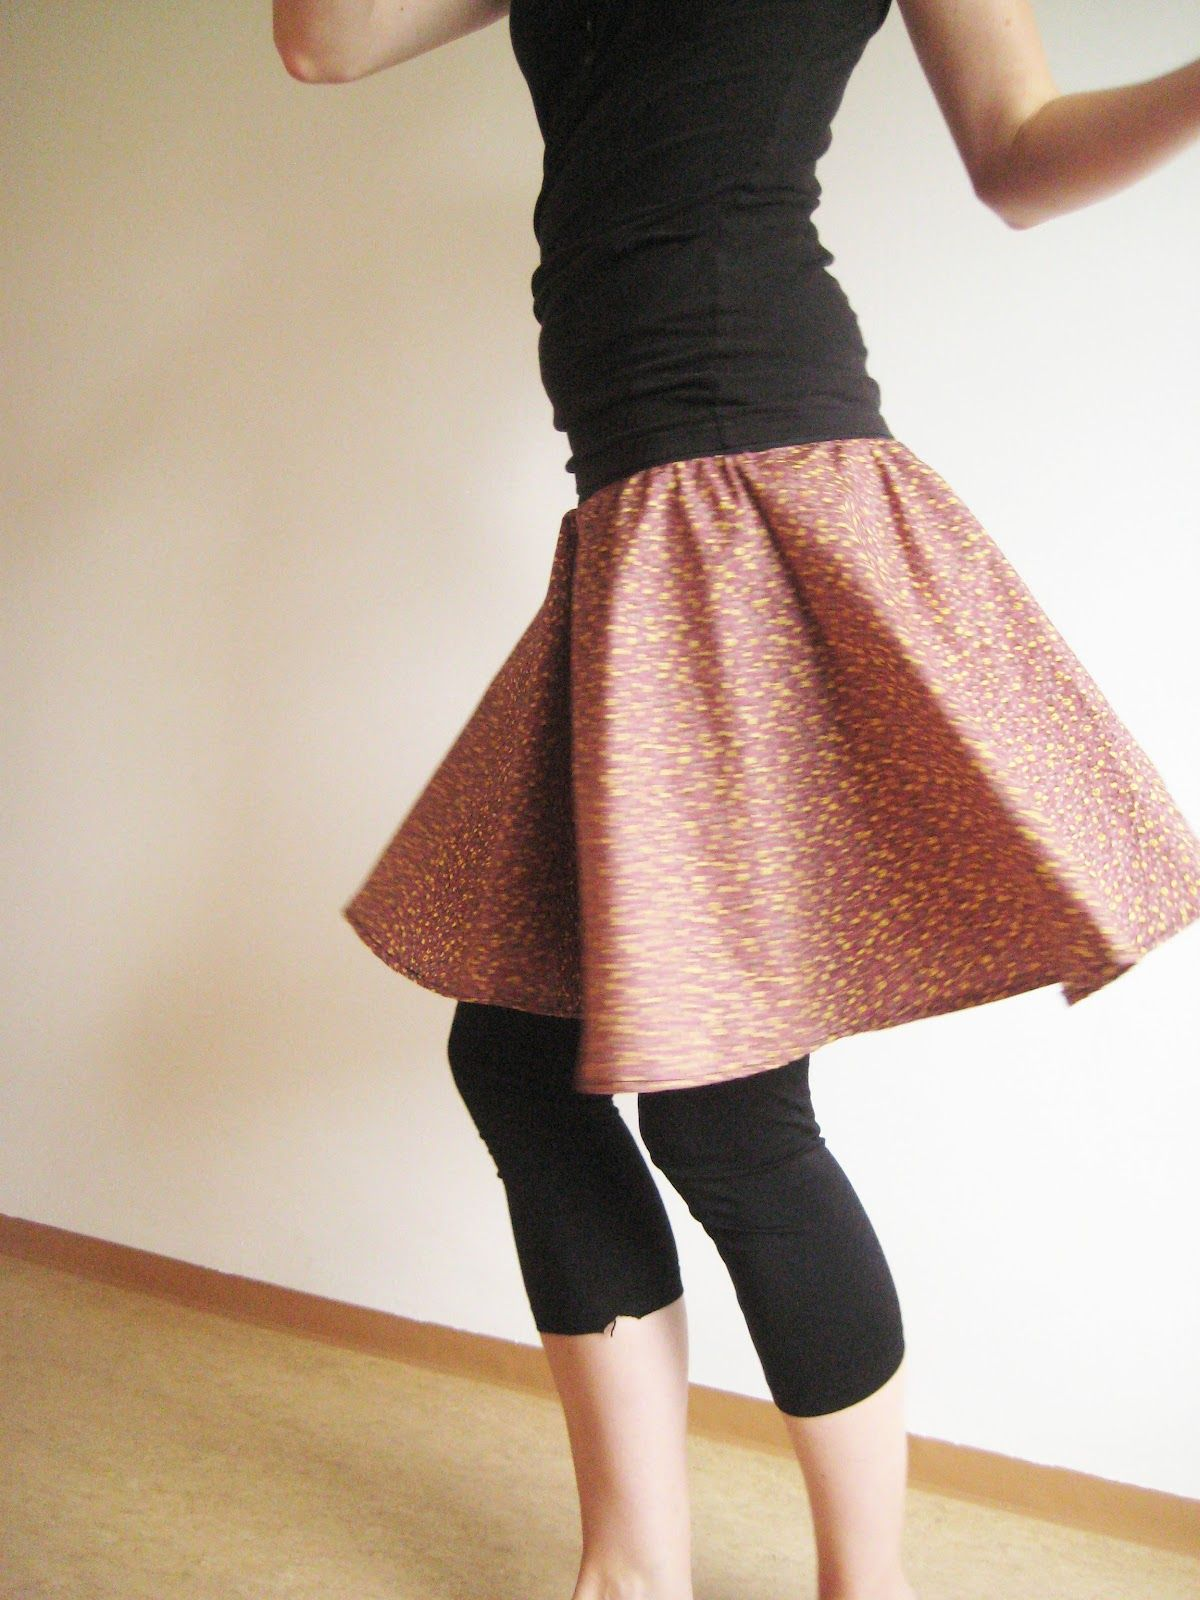 Make your own skirt